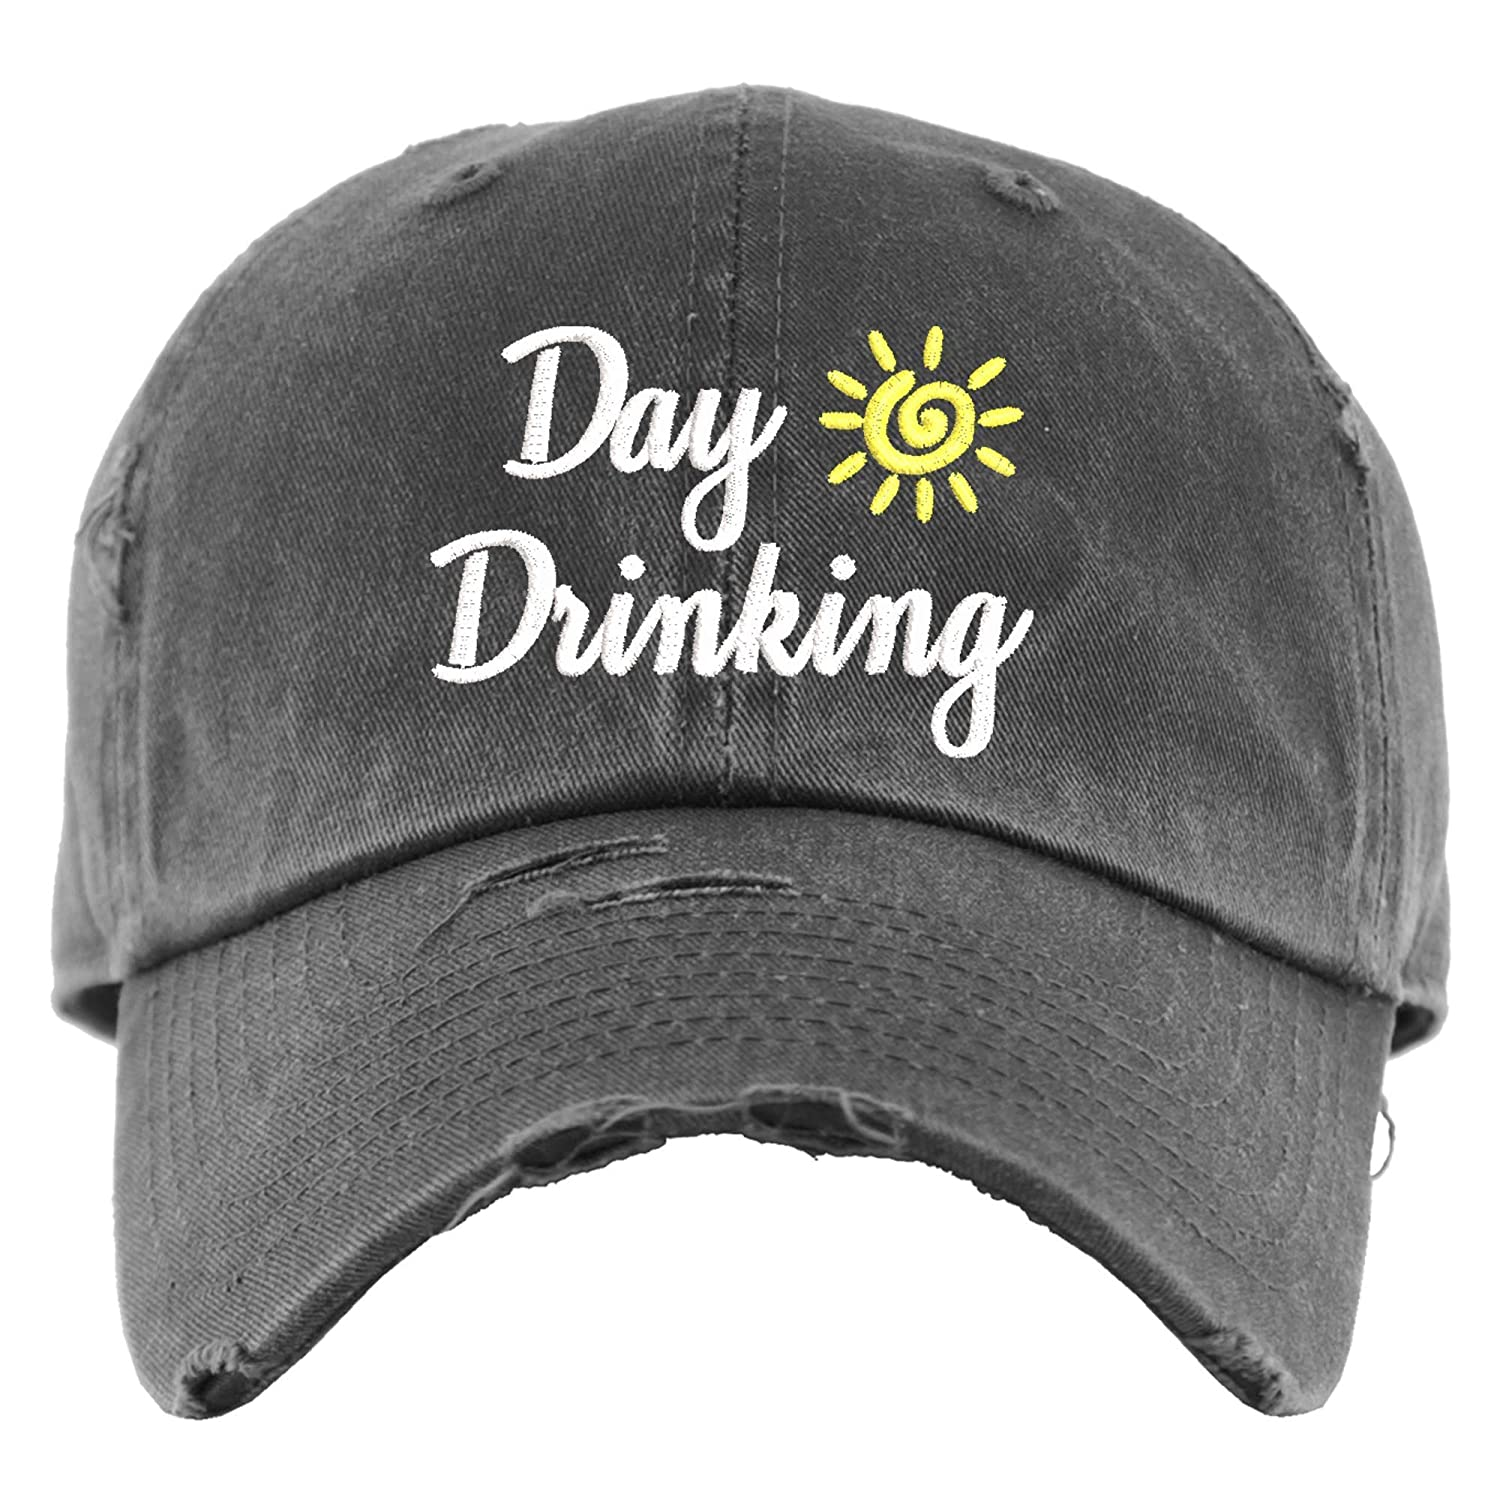 Day Drinking Hat Distressed Baseball Minneapolis Mall Fun Sale price Ponytail OR Cap